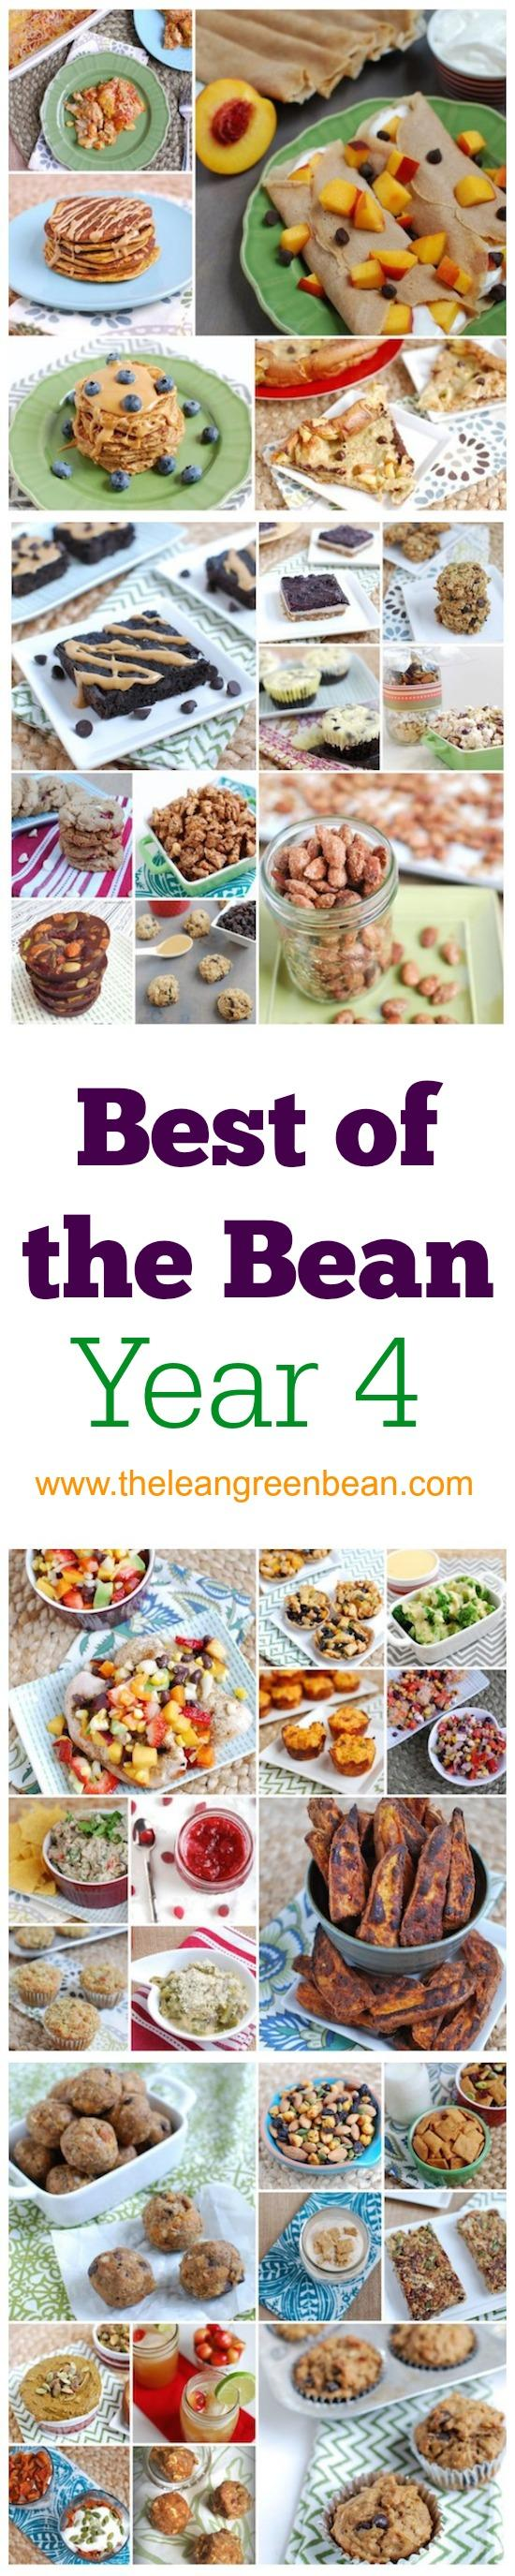 Best of the Bean: Year 4